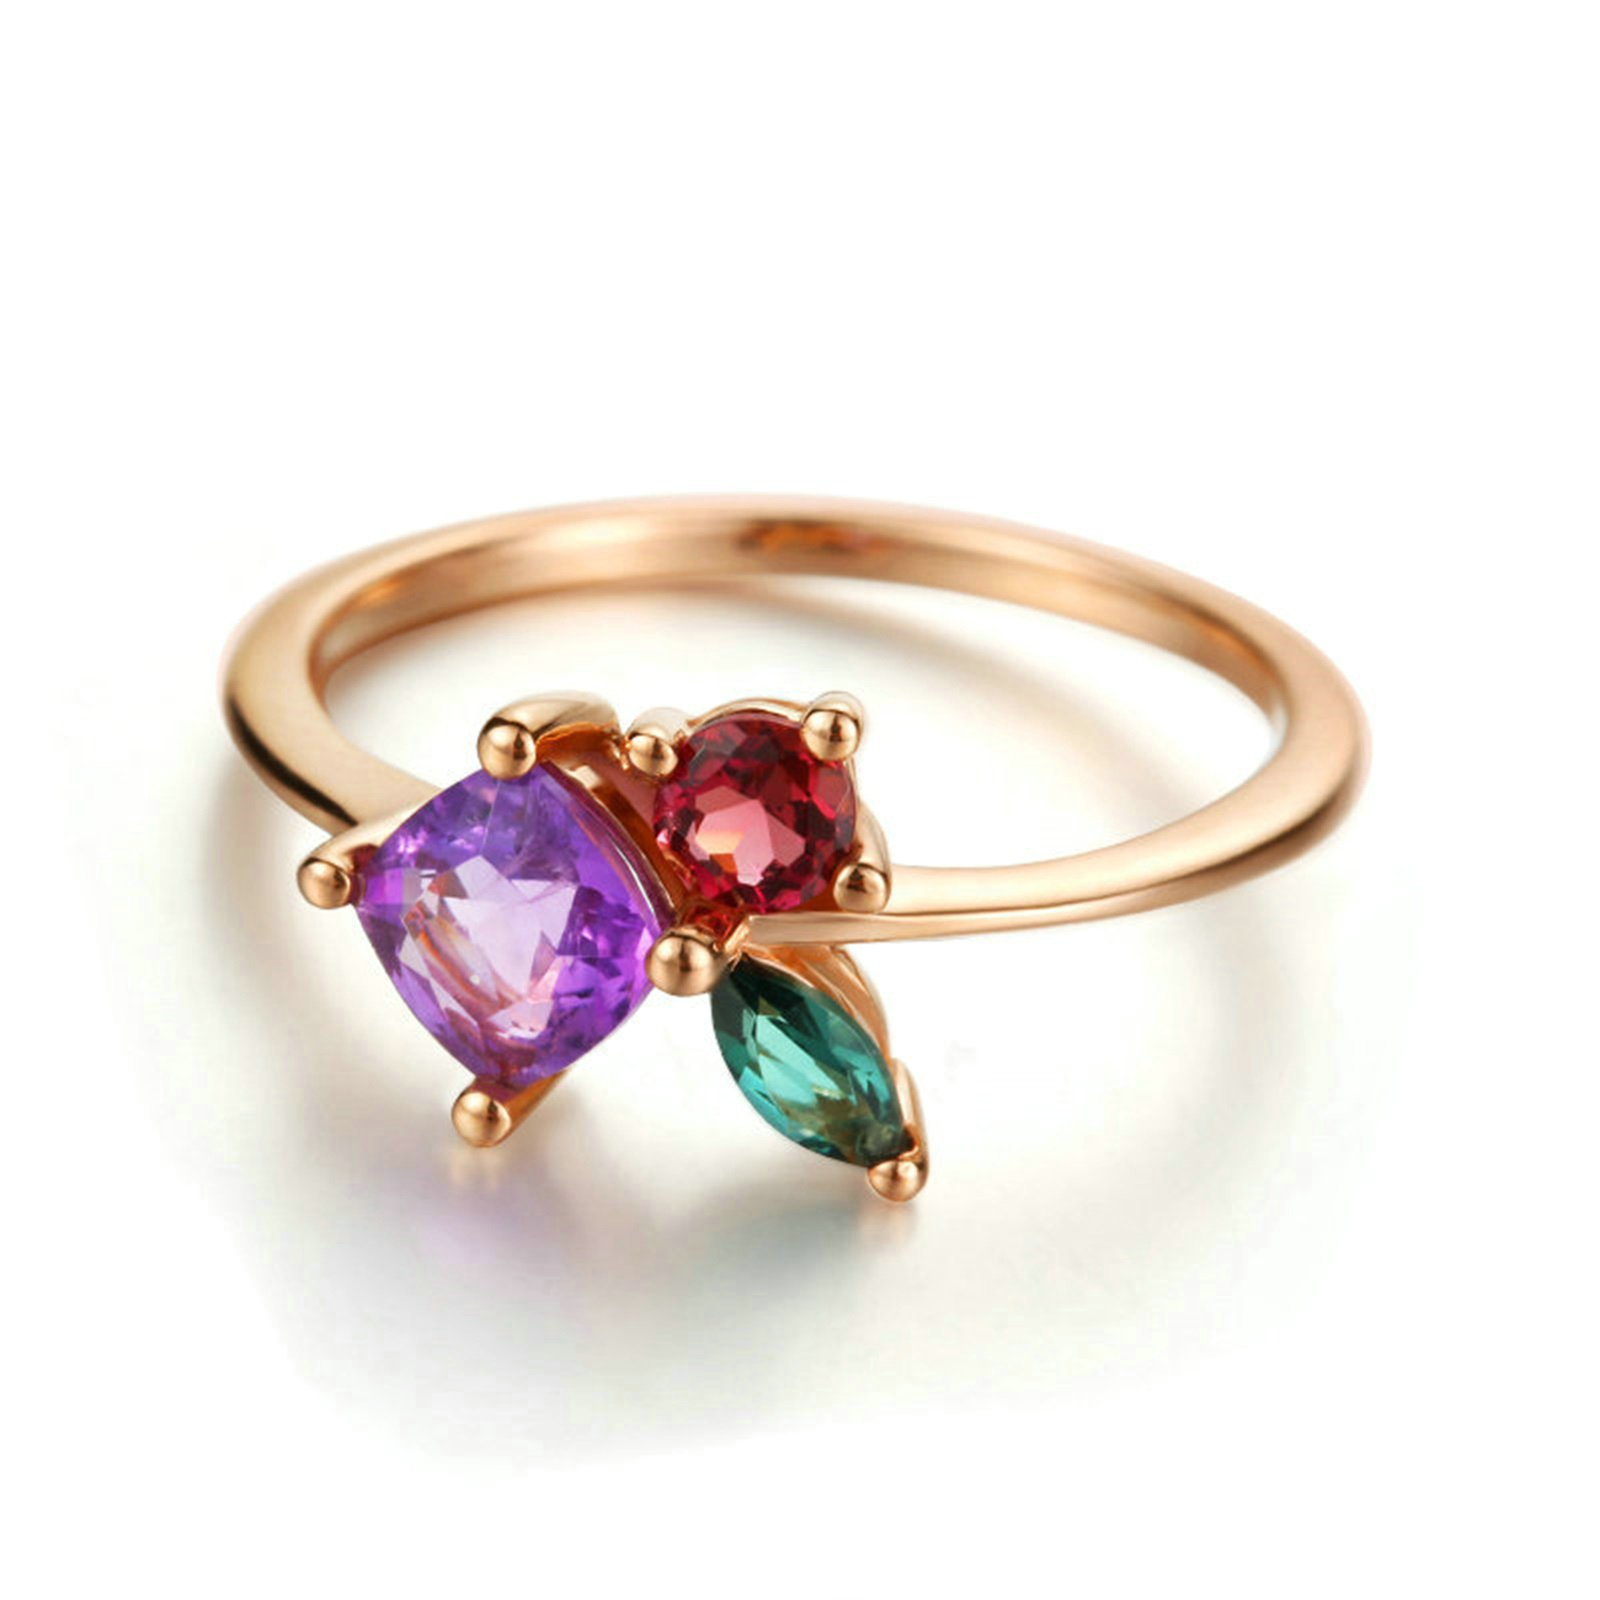 18K Gold Ring(Au750) Green And Pink Tourmaline Ring Amethyst Ring Wedding Engagement Ring for Women Bride Size 6